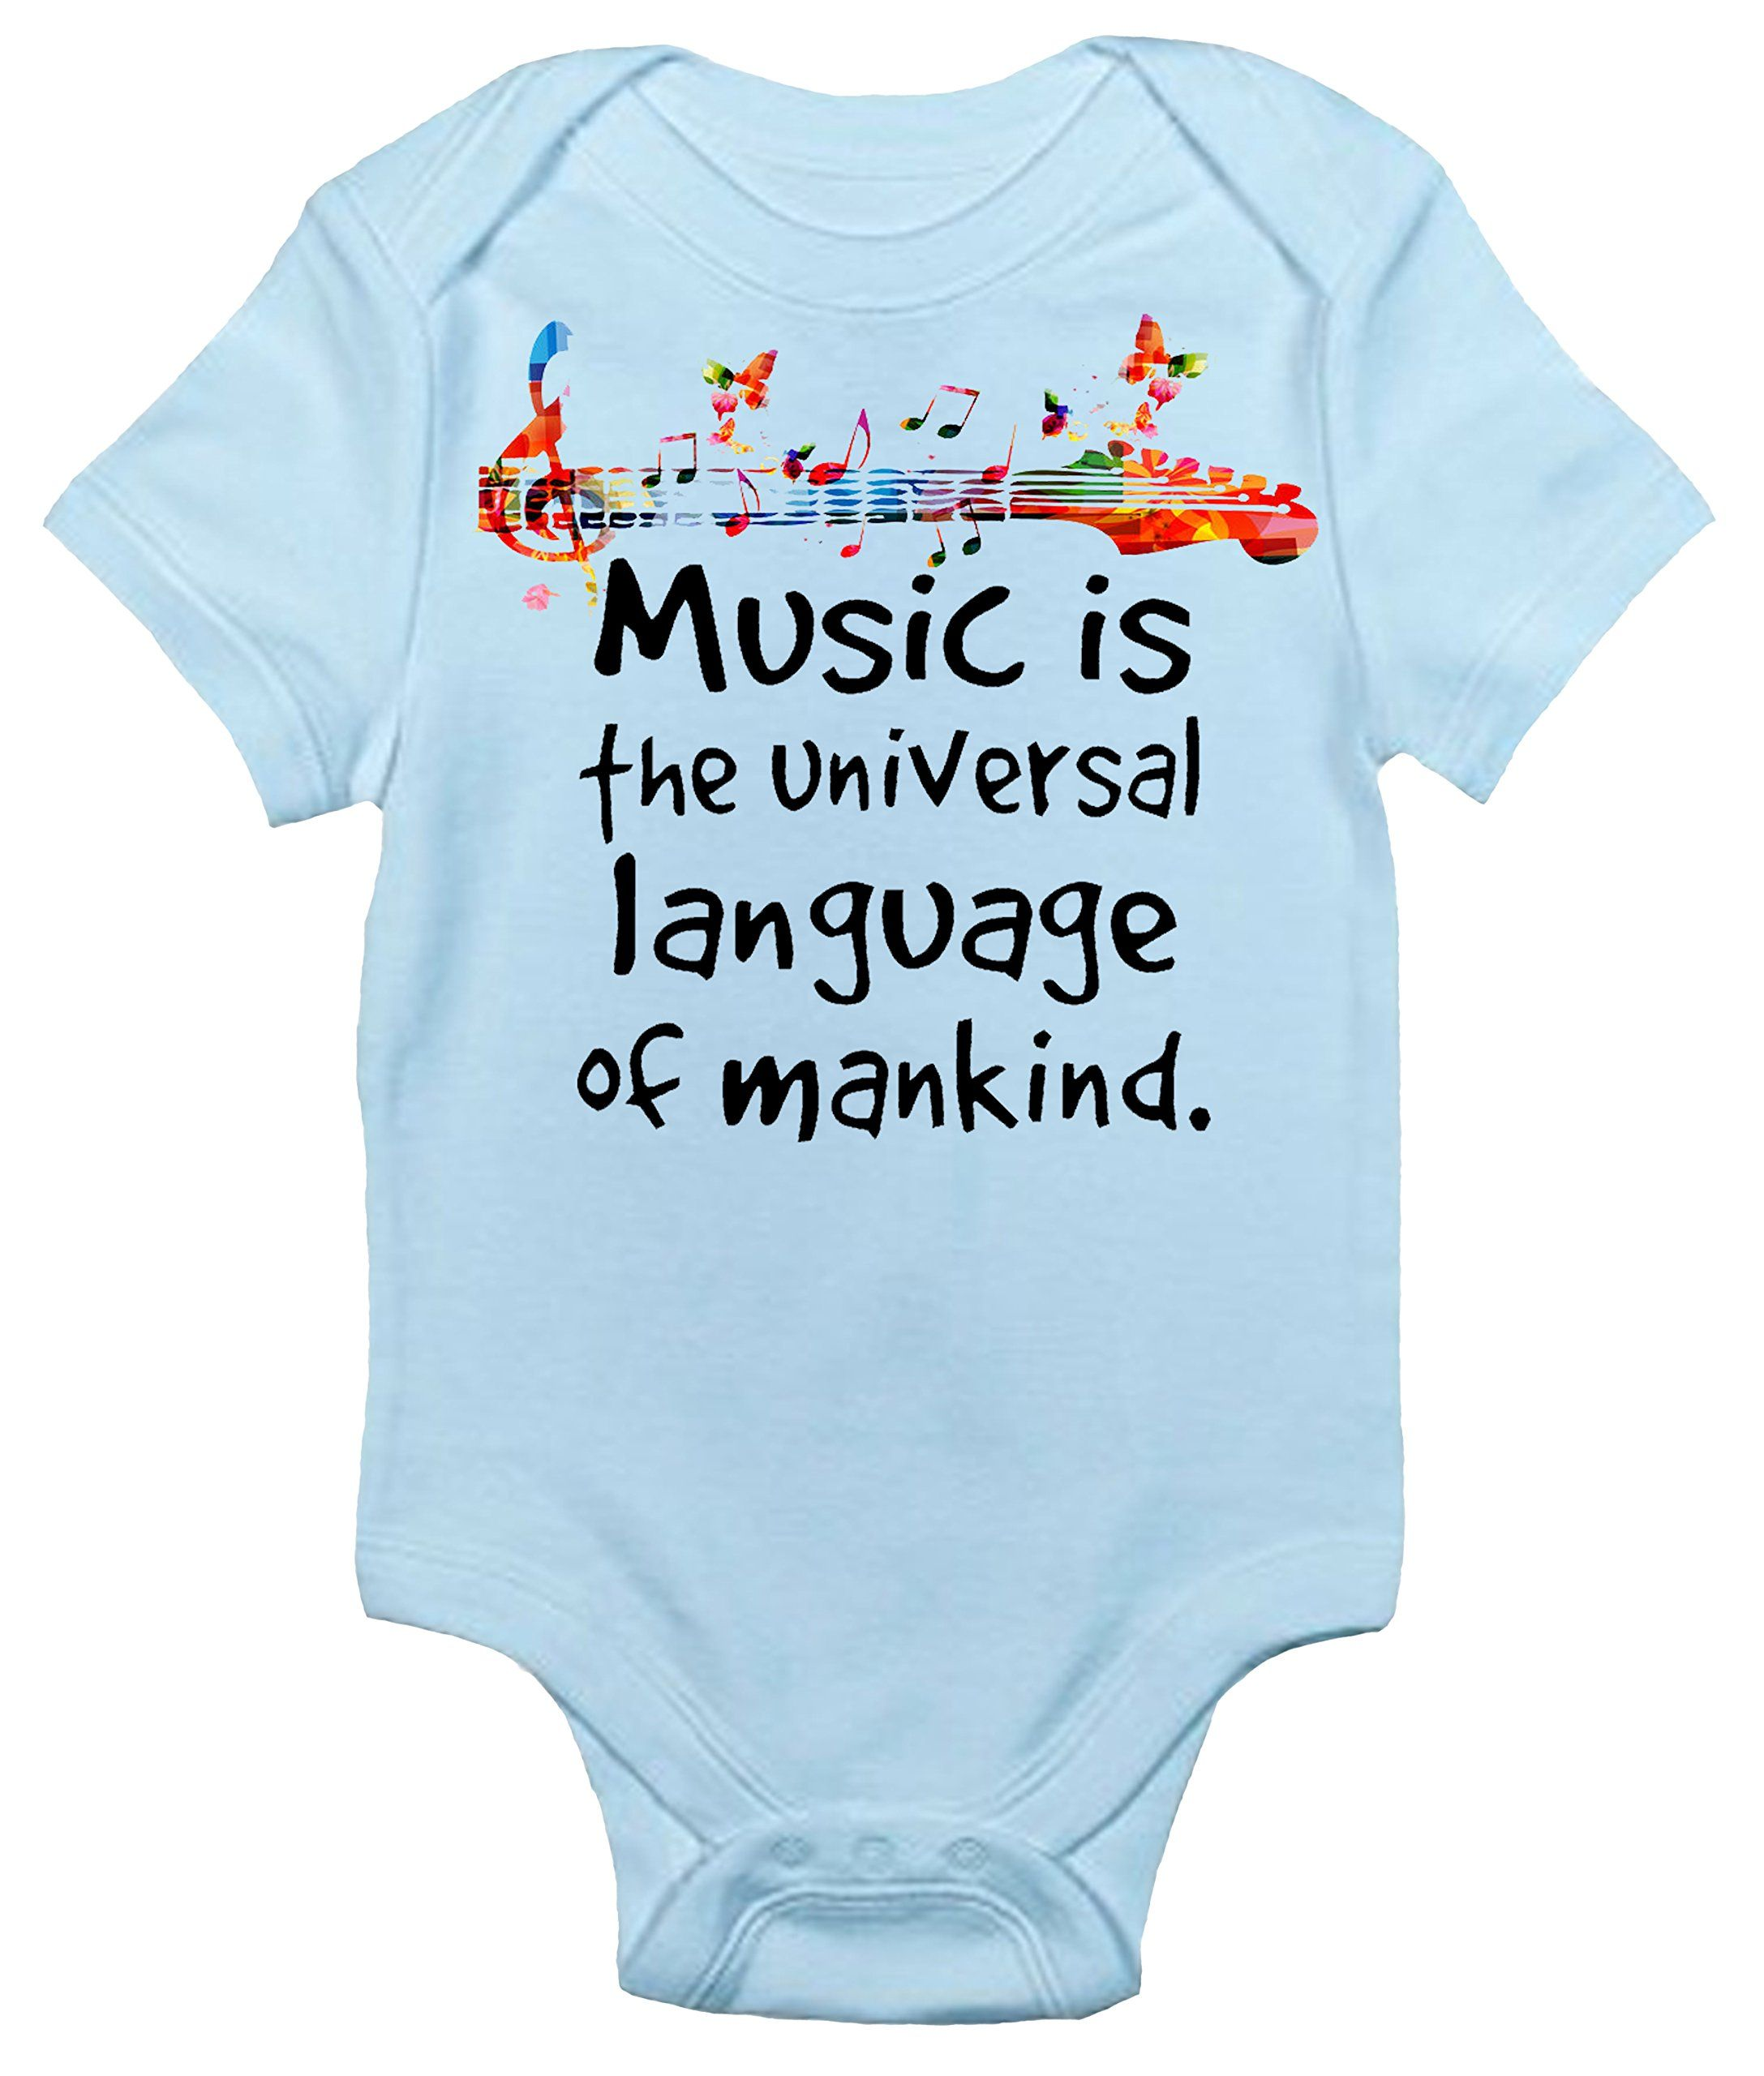 Music Is The Universal Language Of Mankind Baby Bodysuit Cute Baby